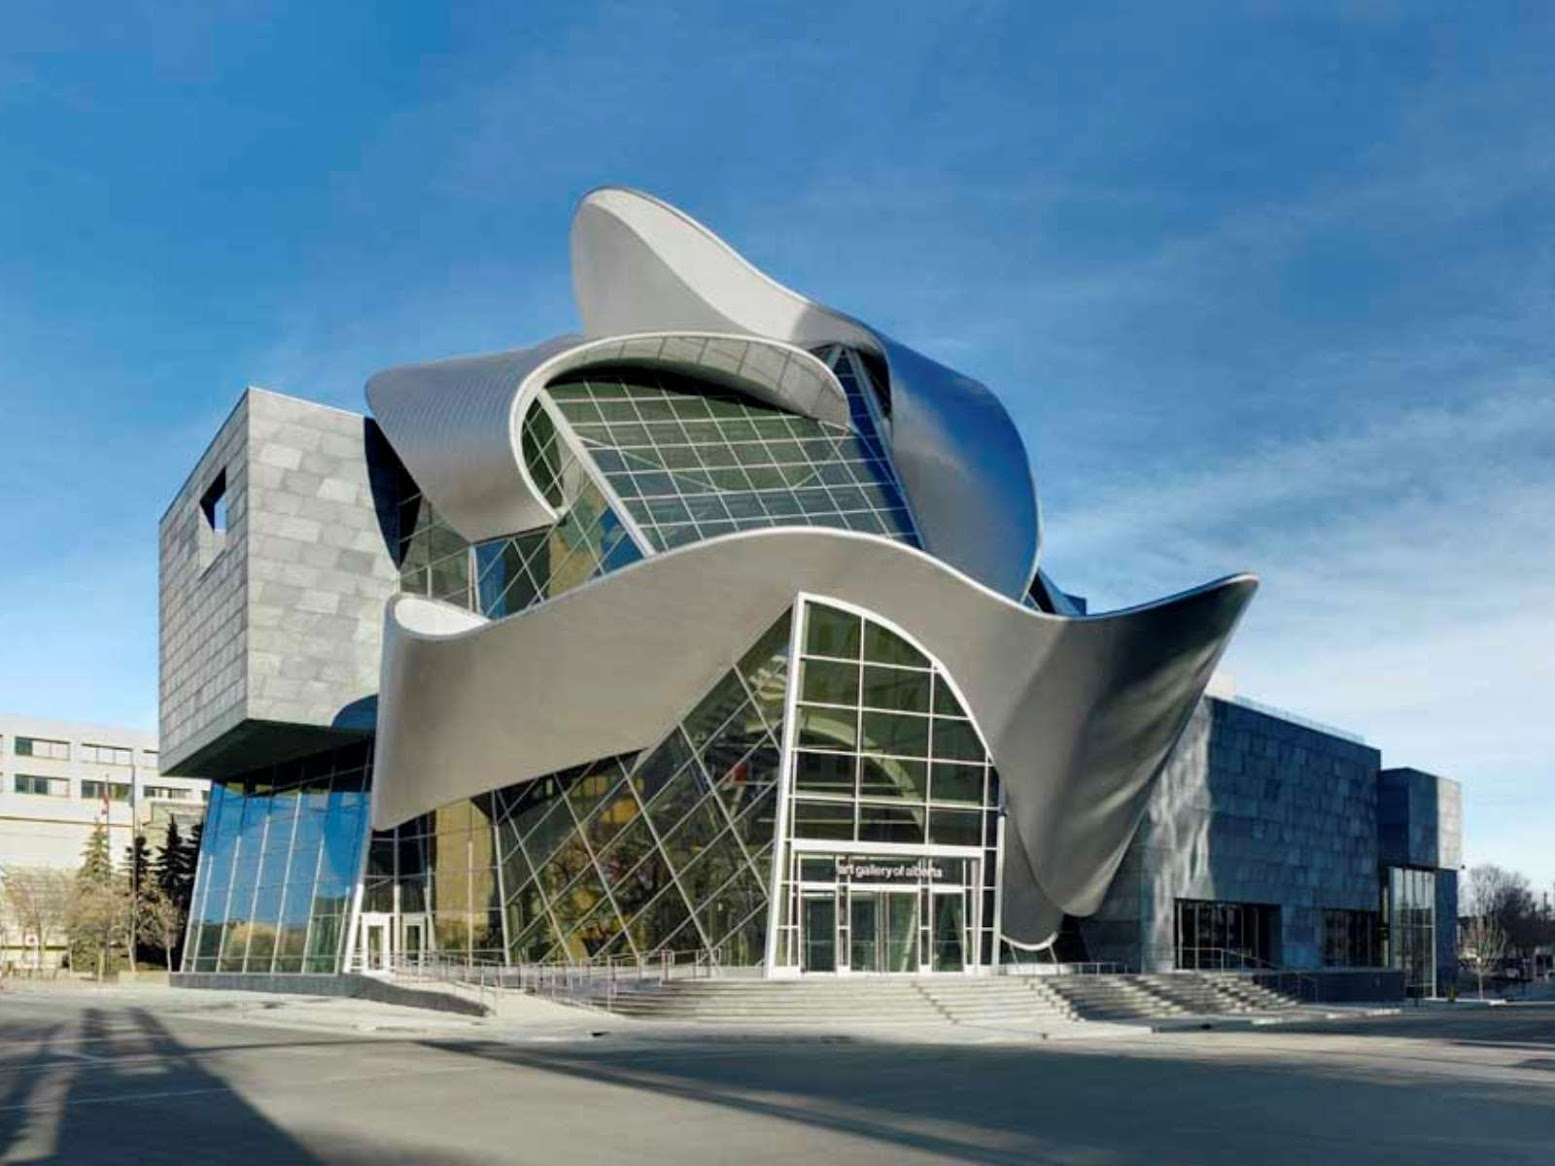 Edmonton, Alberta, Canada: [ART GALLERY OF ALBERTA BY RANDALL STOUT ARCHITECTS]